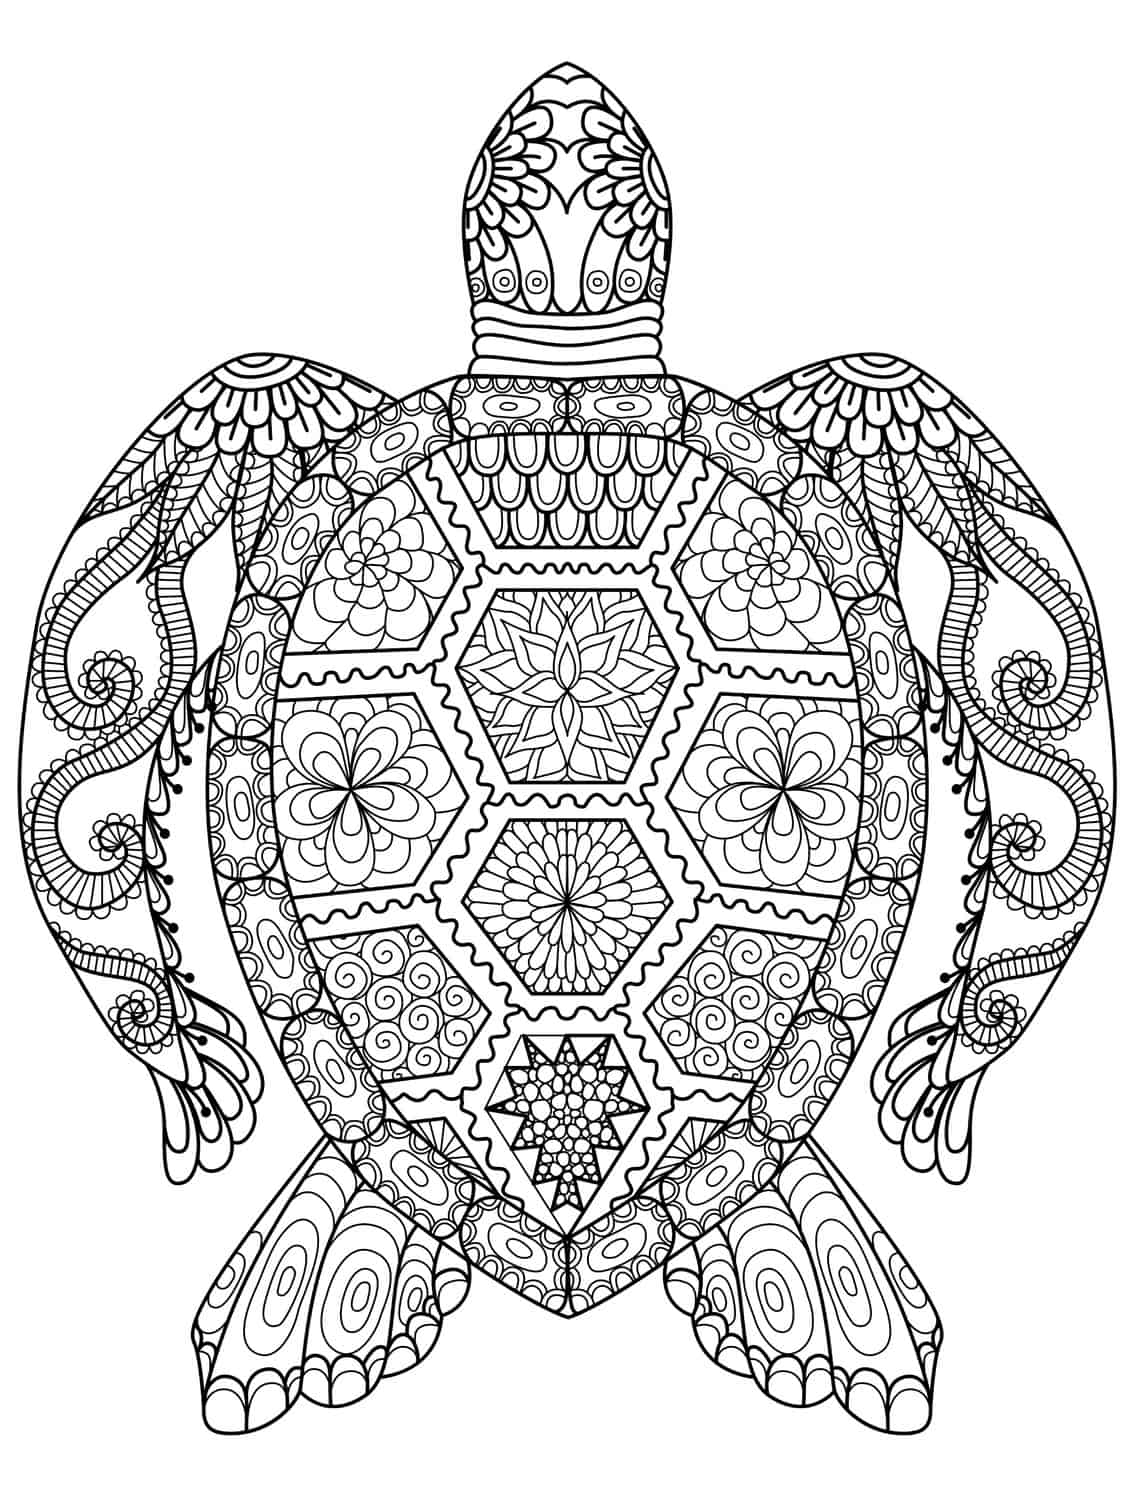 coloring pages of turtle 20 gorgeous free printable adult coloring pages page 3 turtle coloring of pages